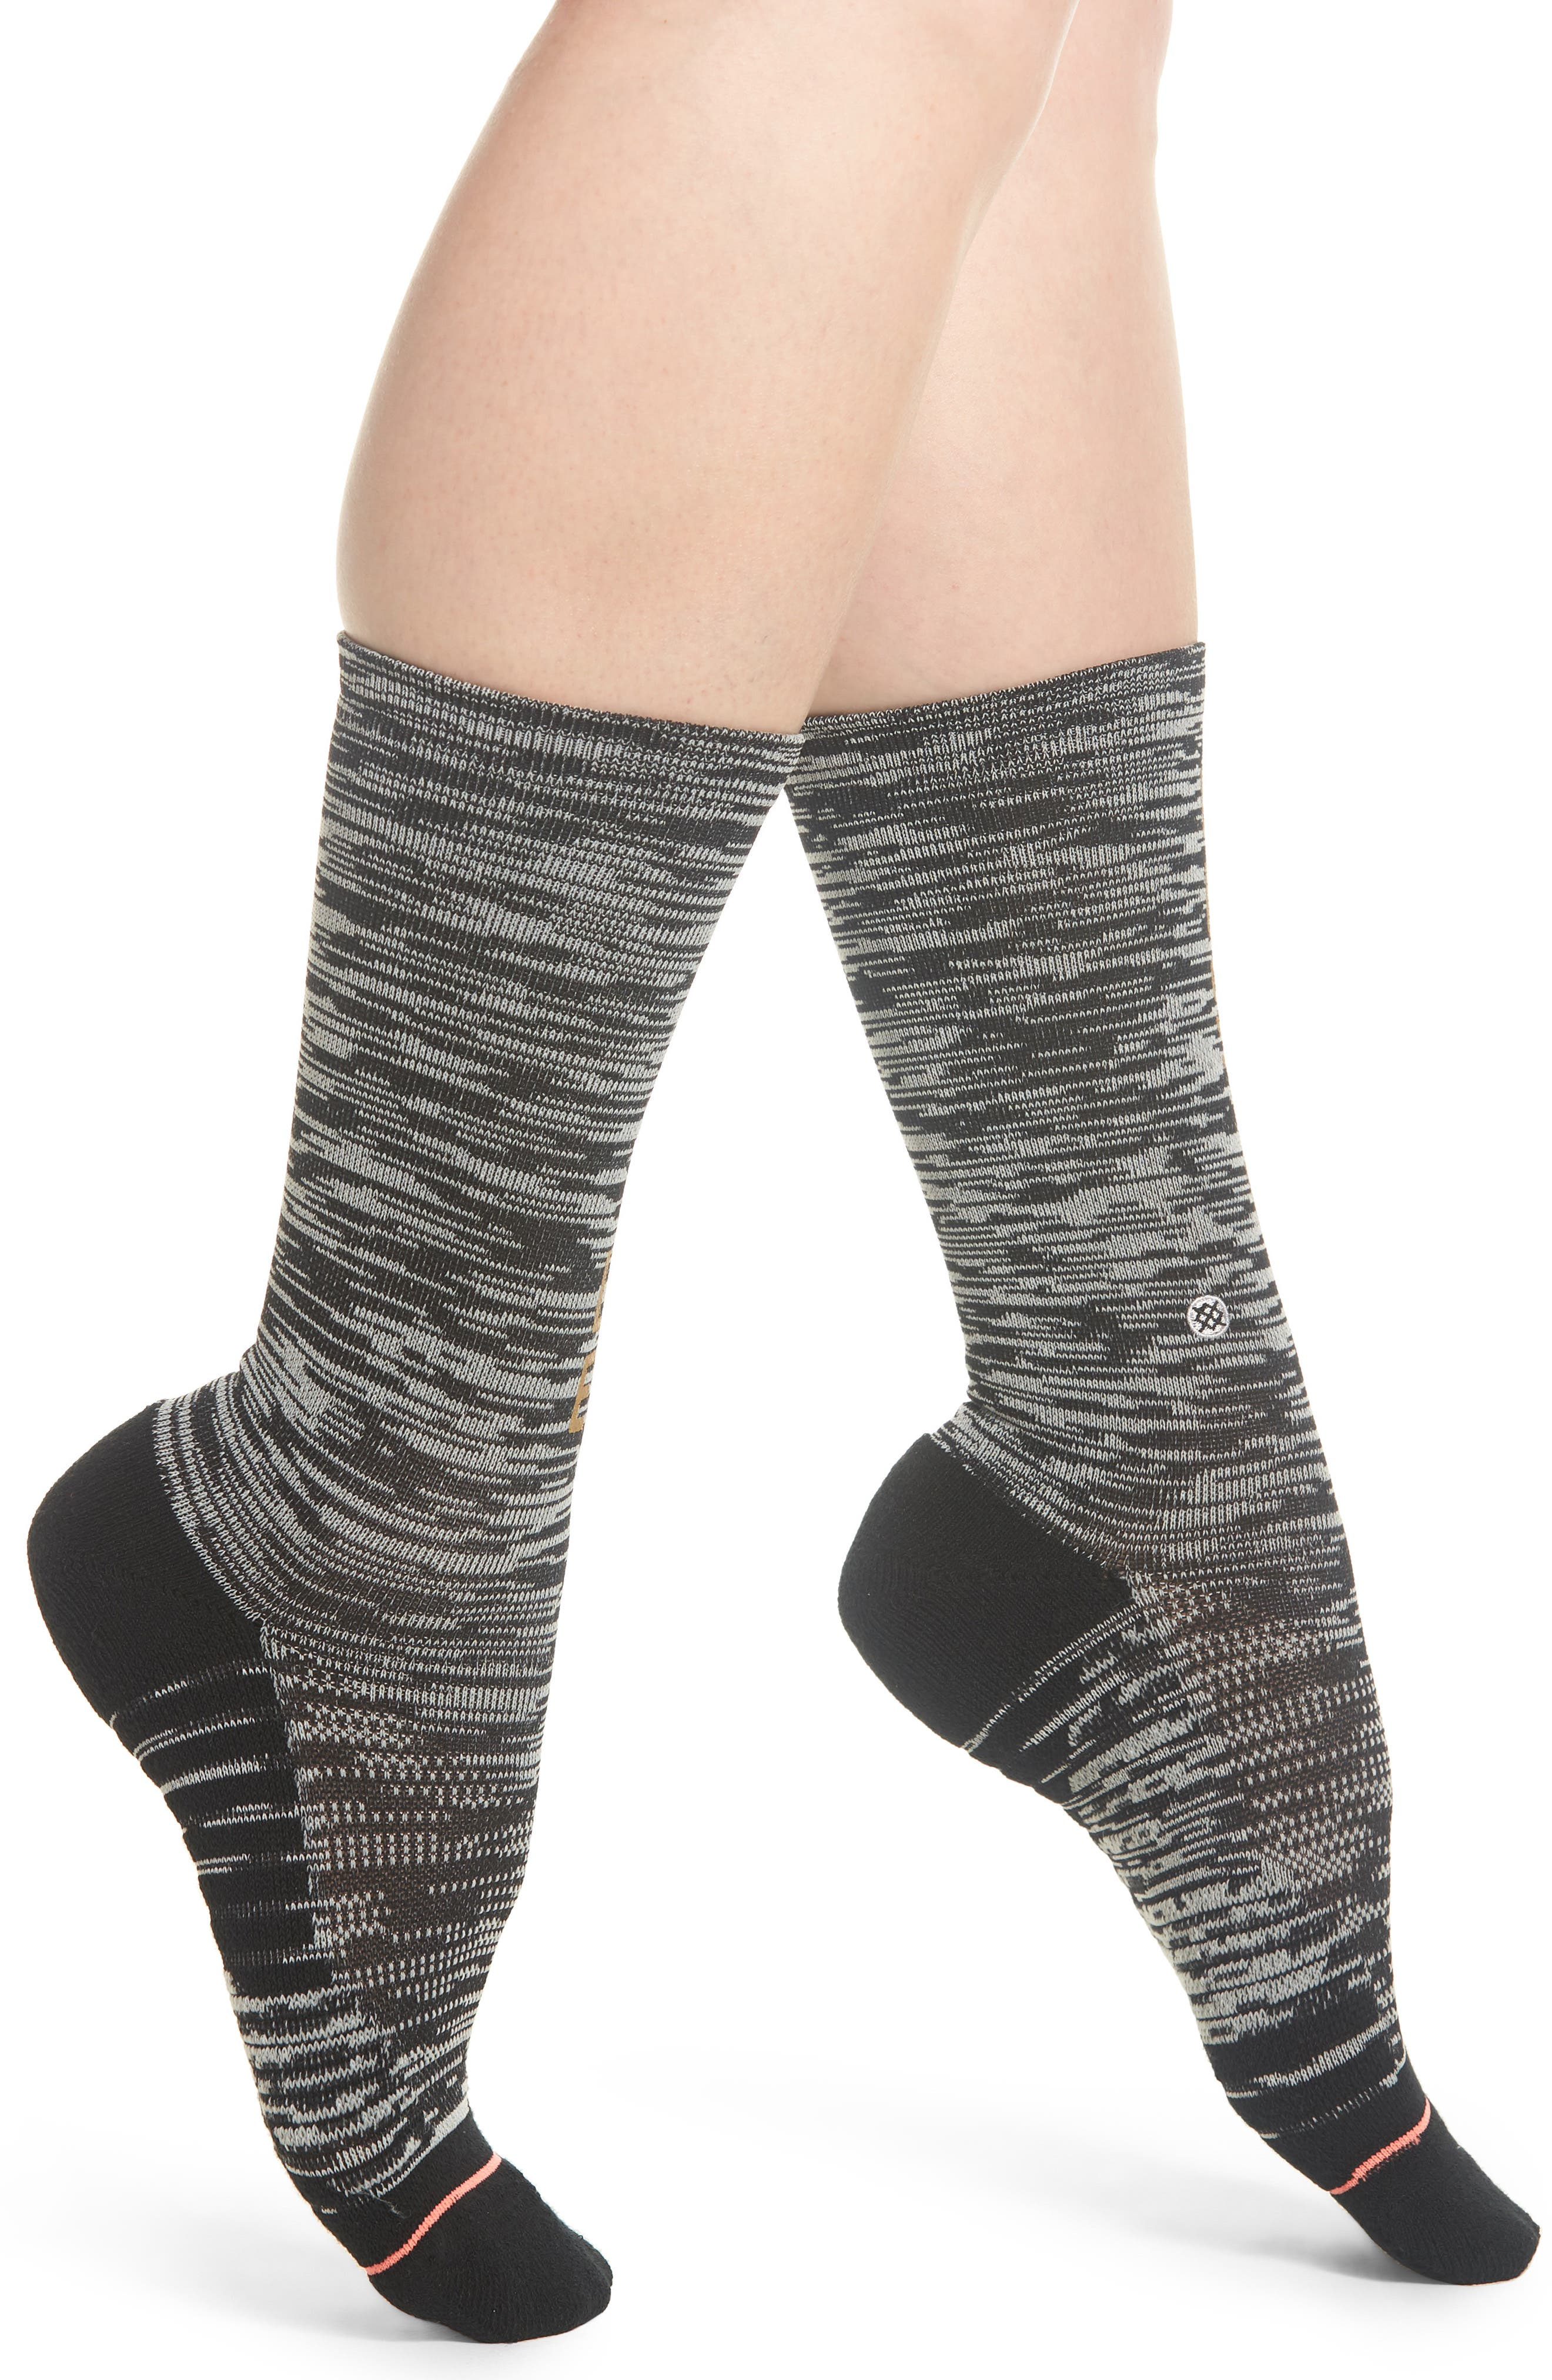 Hustle Harder Crew Socks,                         Main,                         color, Black